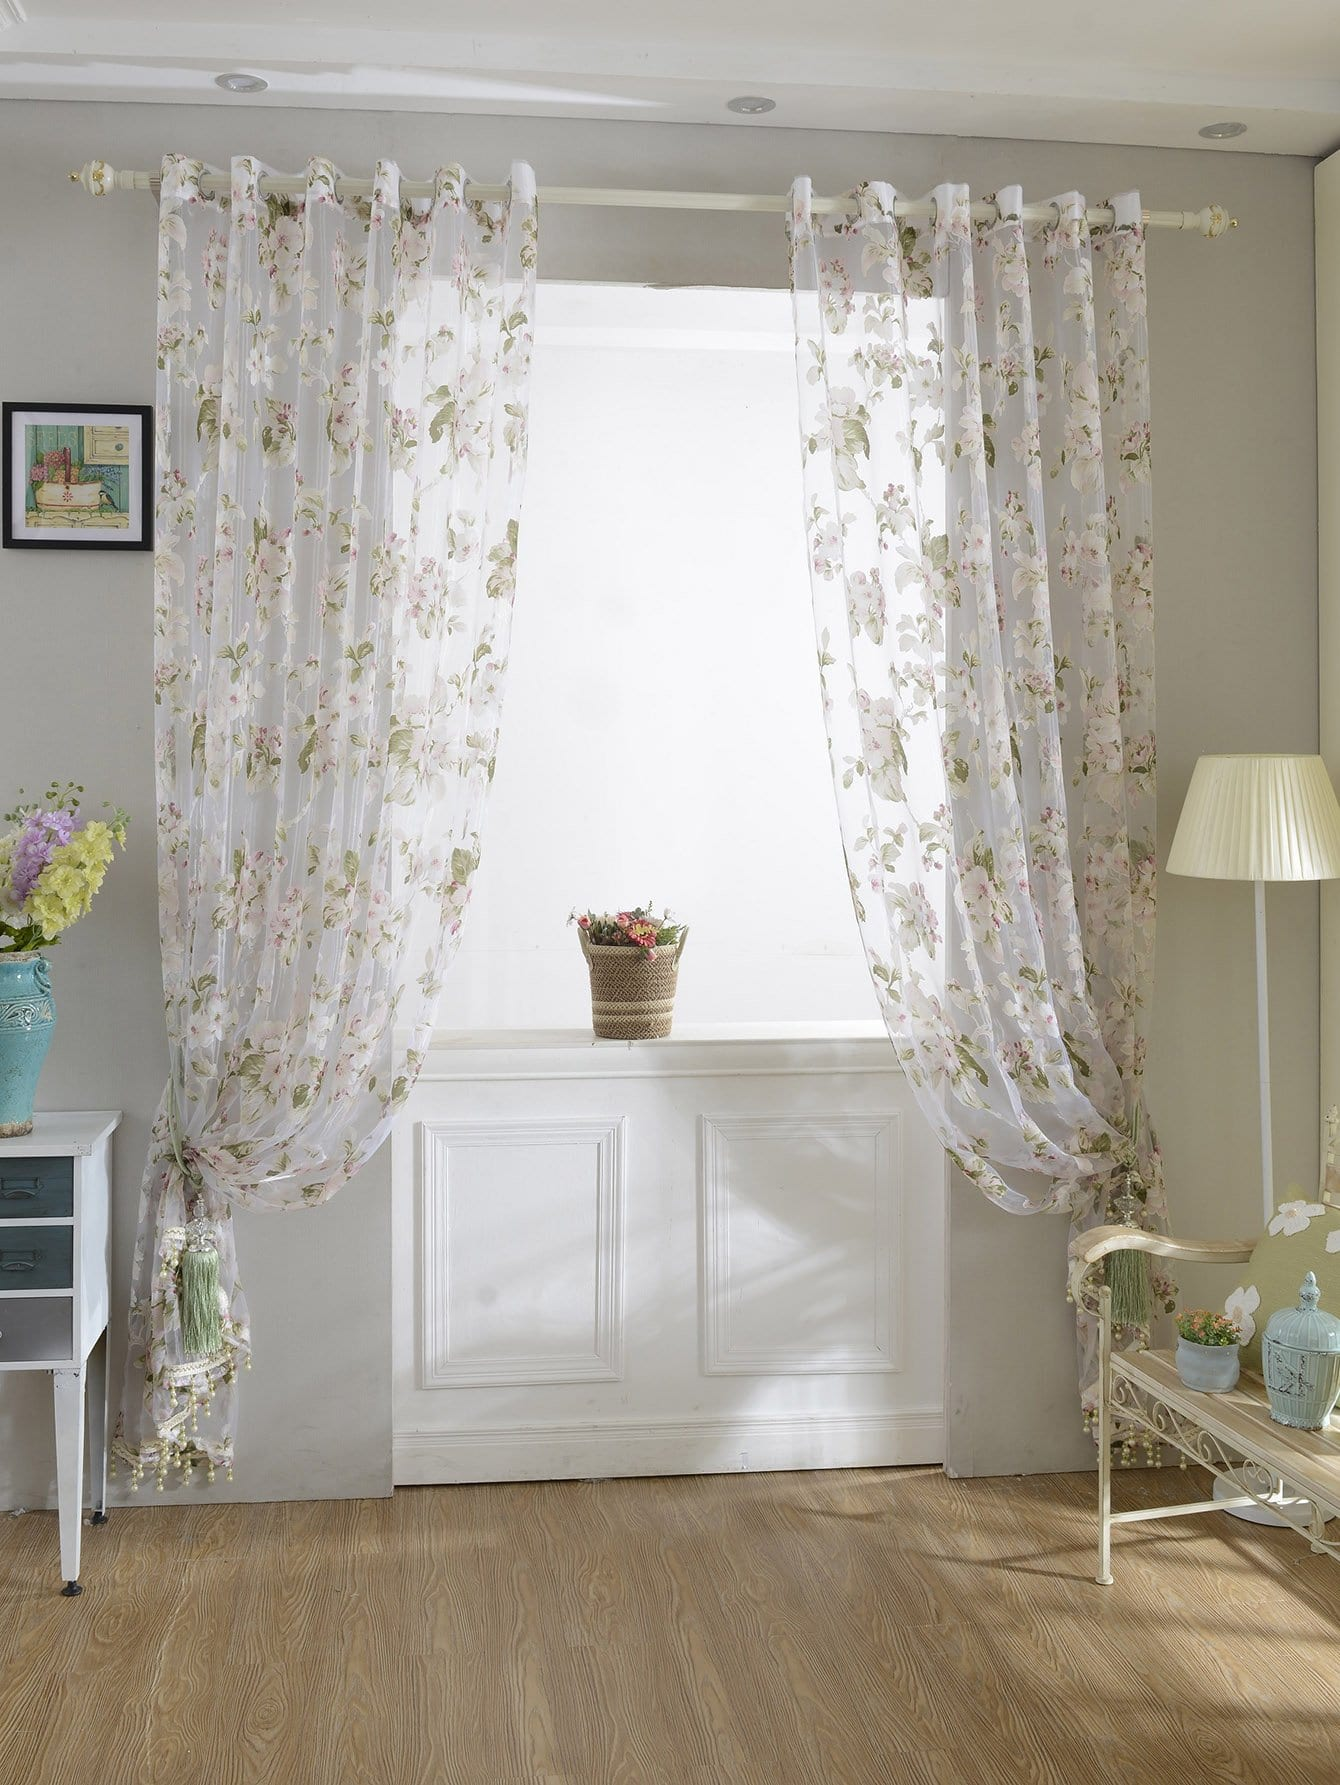 Tassel Fringe Rod Pocket Sheer Curtain 1pc floral print rod pocket sheer curtain 1pc